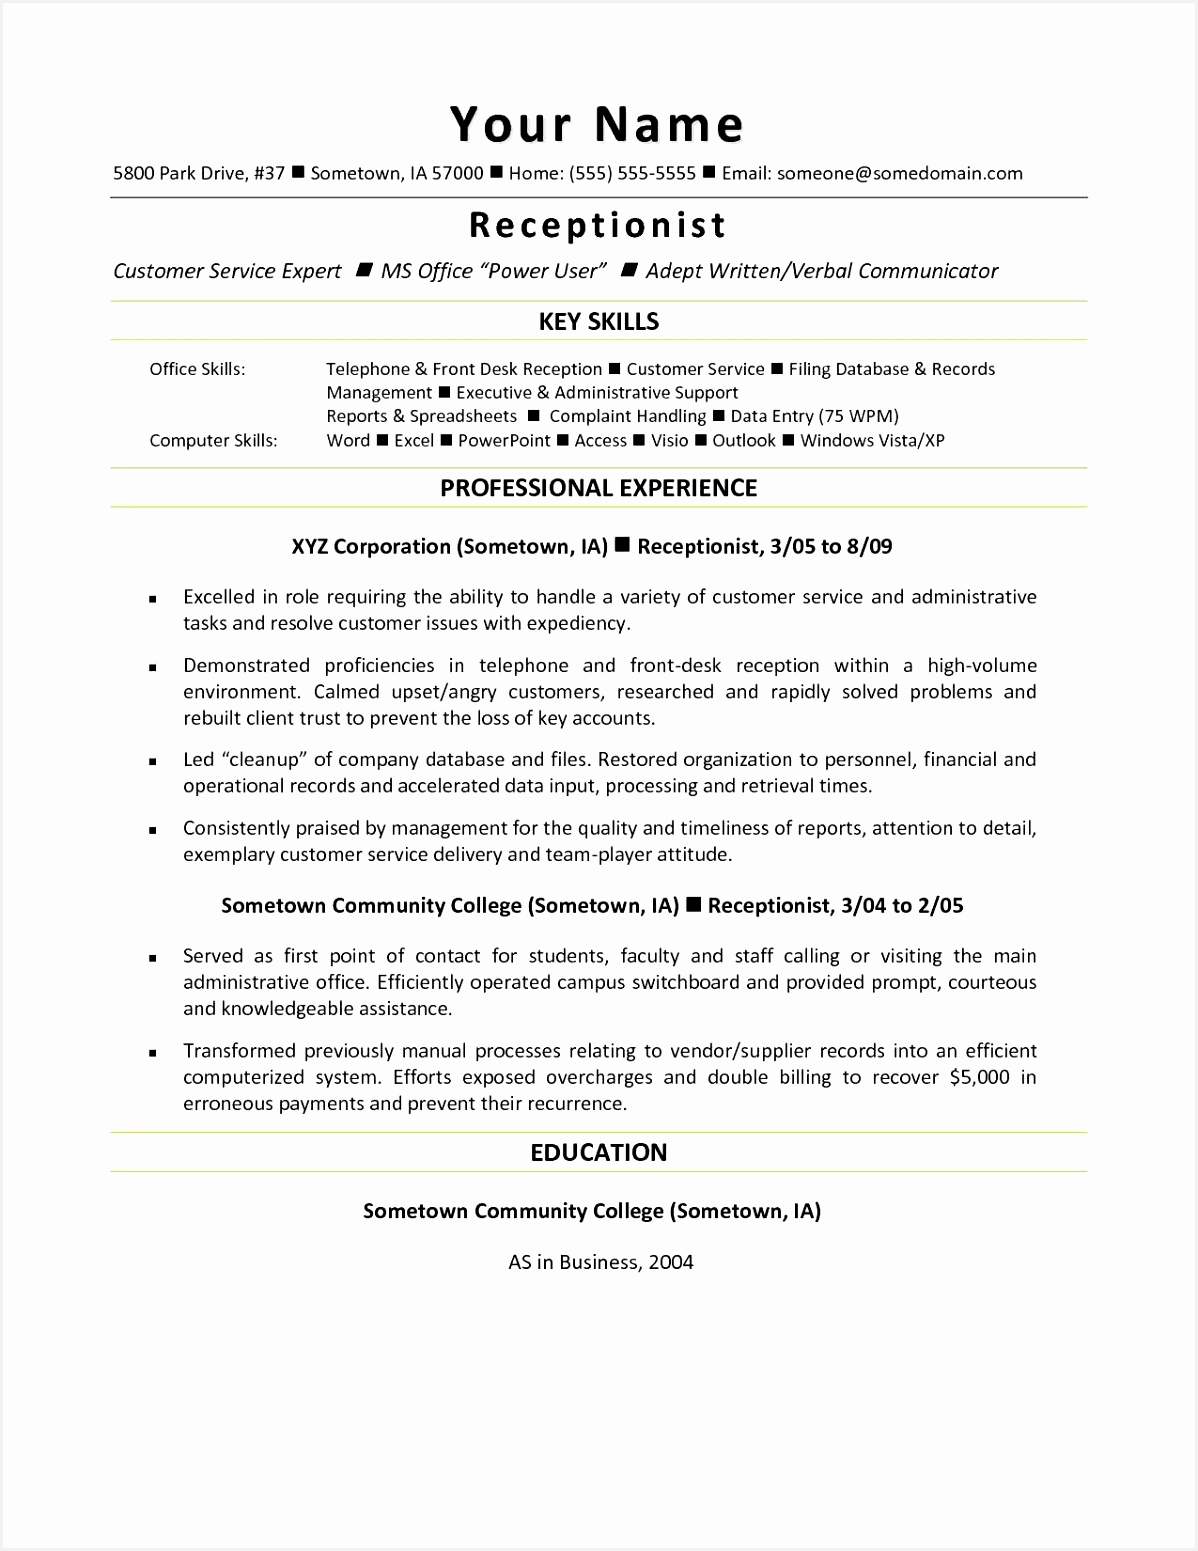 Awesome Resume Template Sekhi Inspirational How to Set Up Resume Luxury Awesome Resume Portfolio Examples Fresh Of 6 Awesome Resume Template